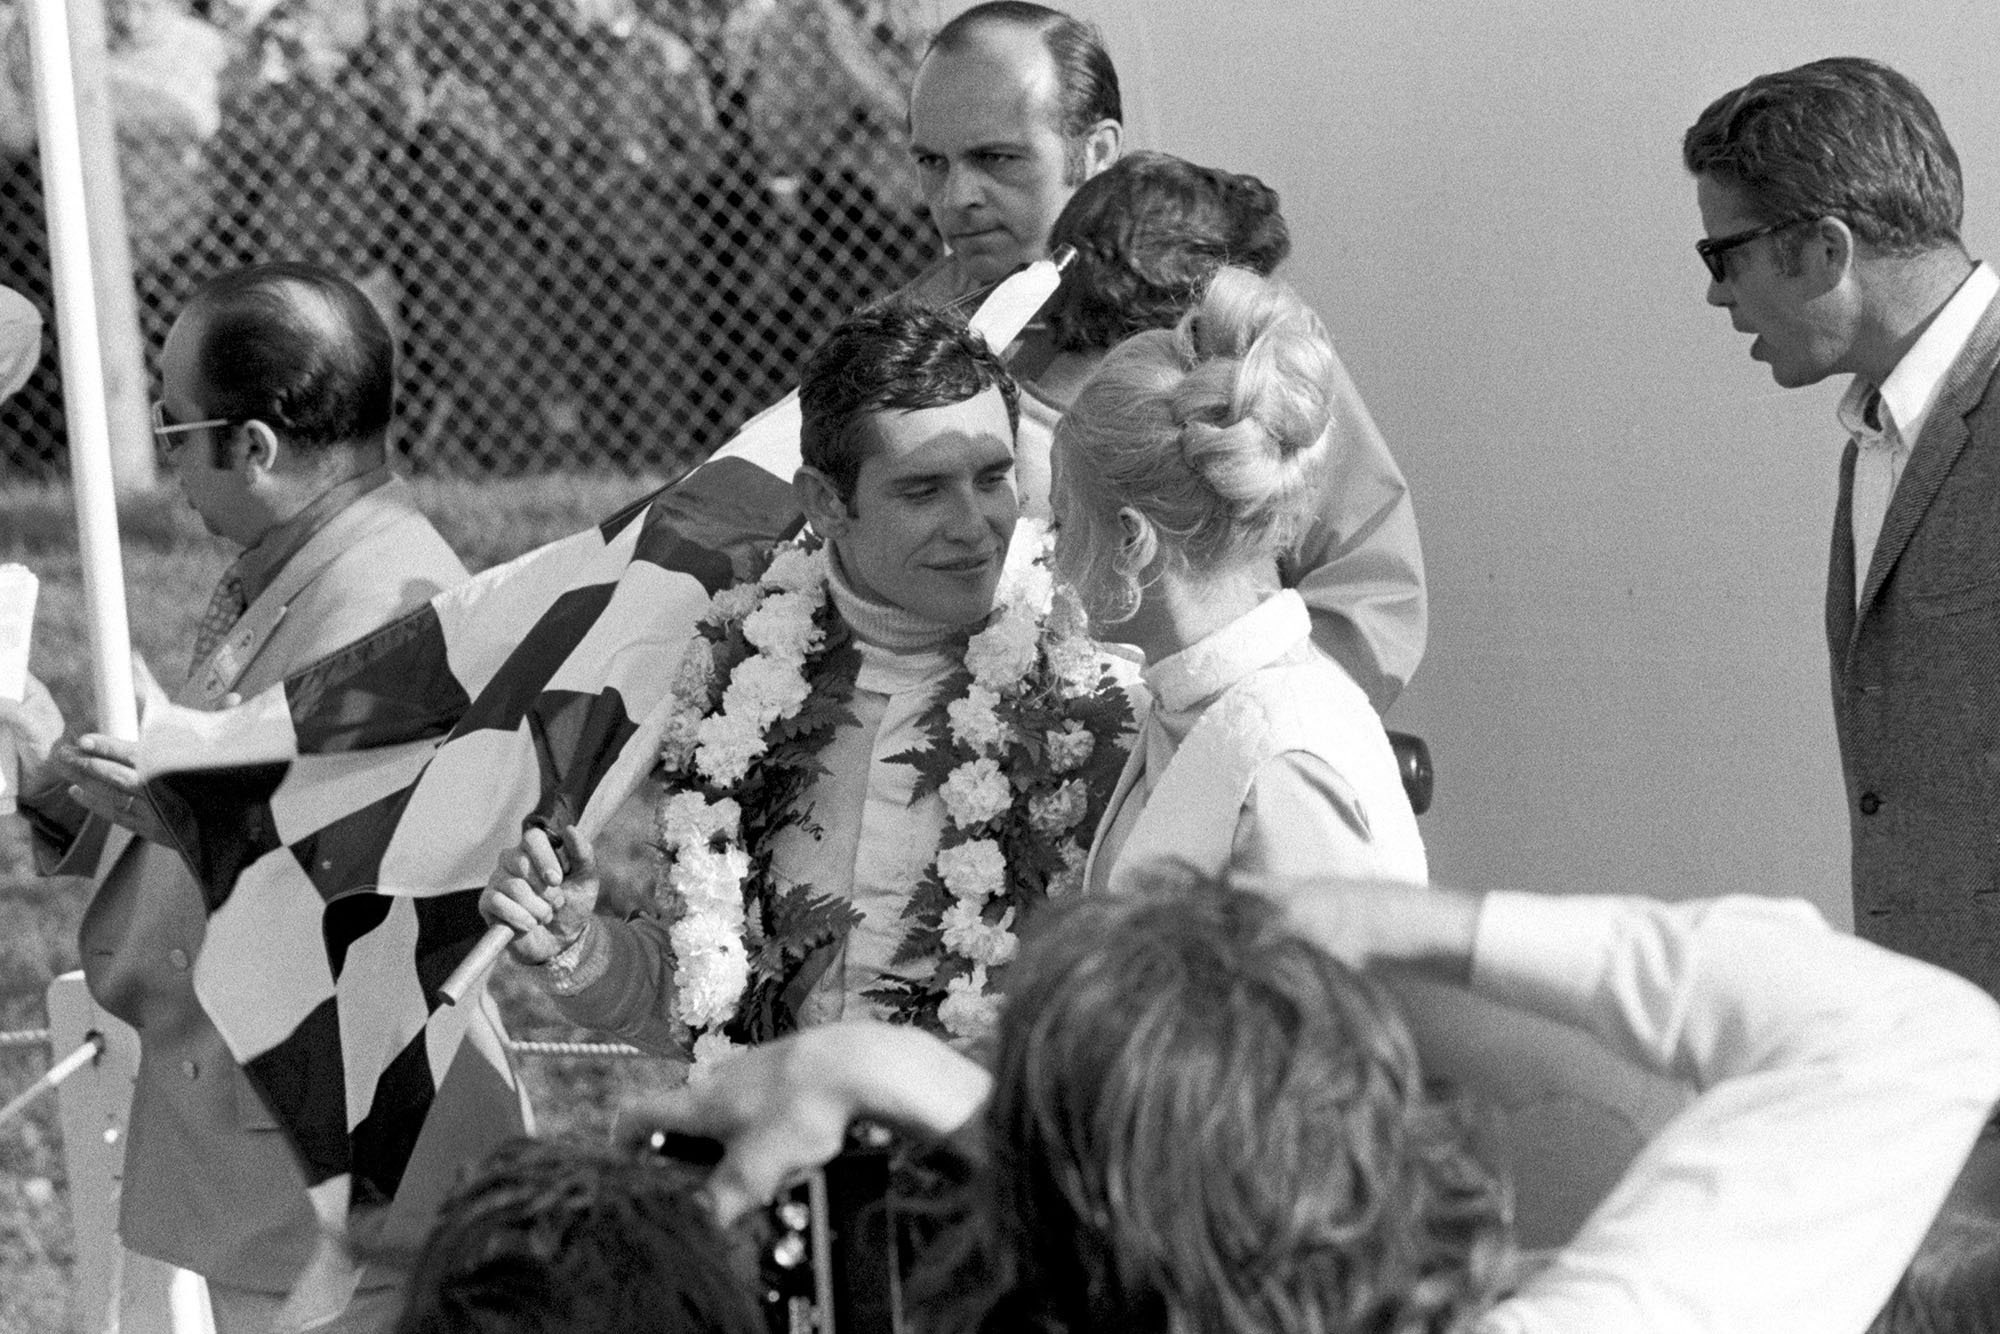 Jacky Ickx celebrates on the podium afterw inning the 1970 Canadian Grand Prix